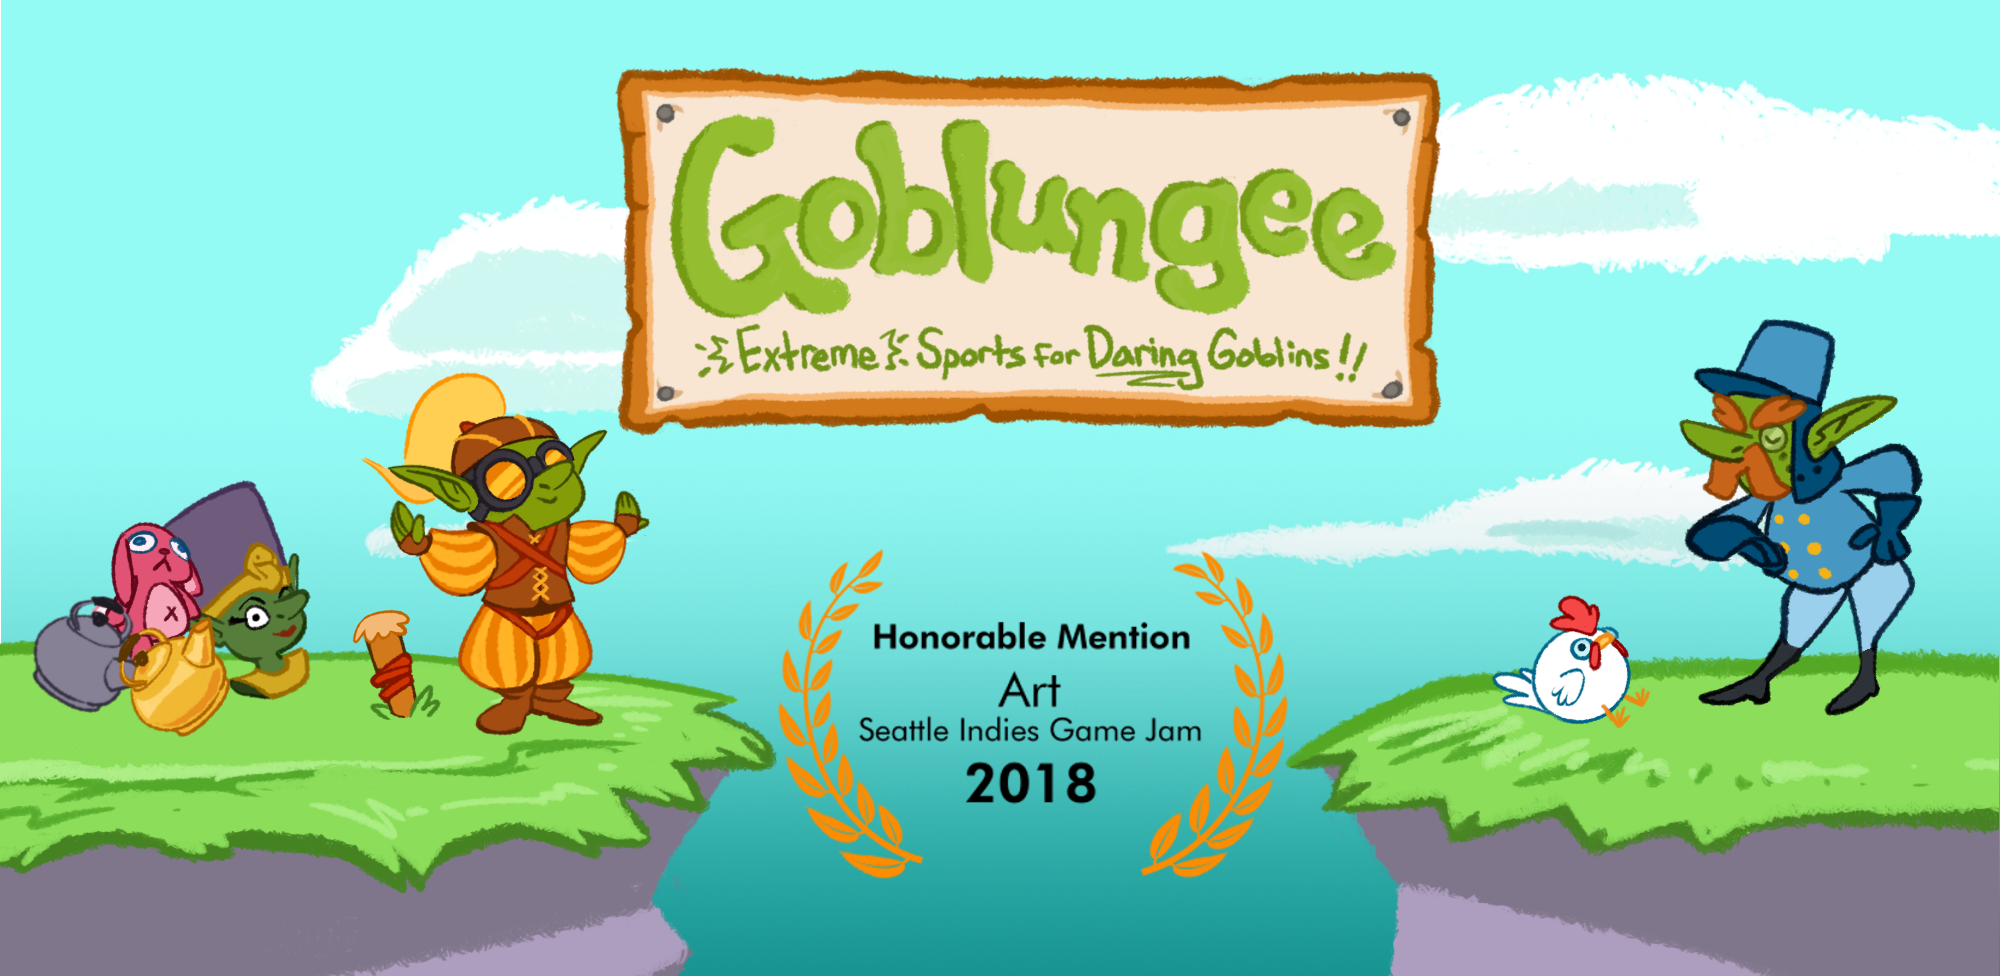 Goblungee_Game.png